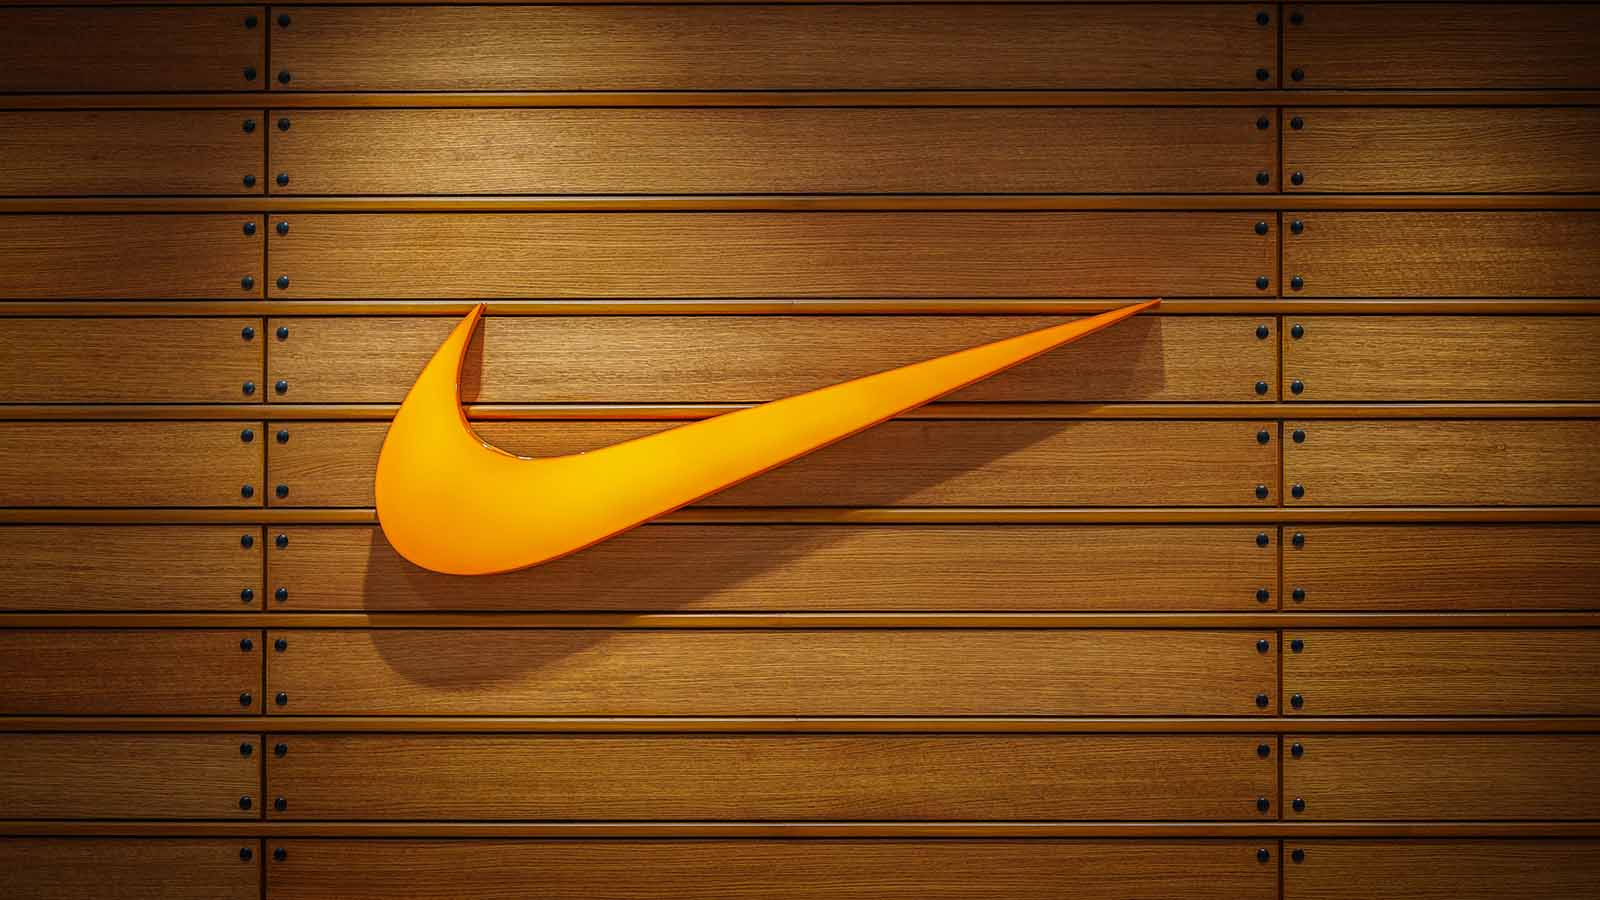 Dropping Amazon Provides Big Swoosh For Nike Stock